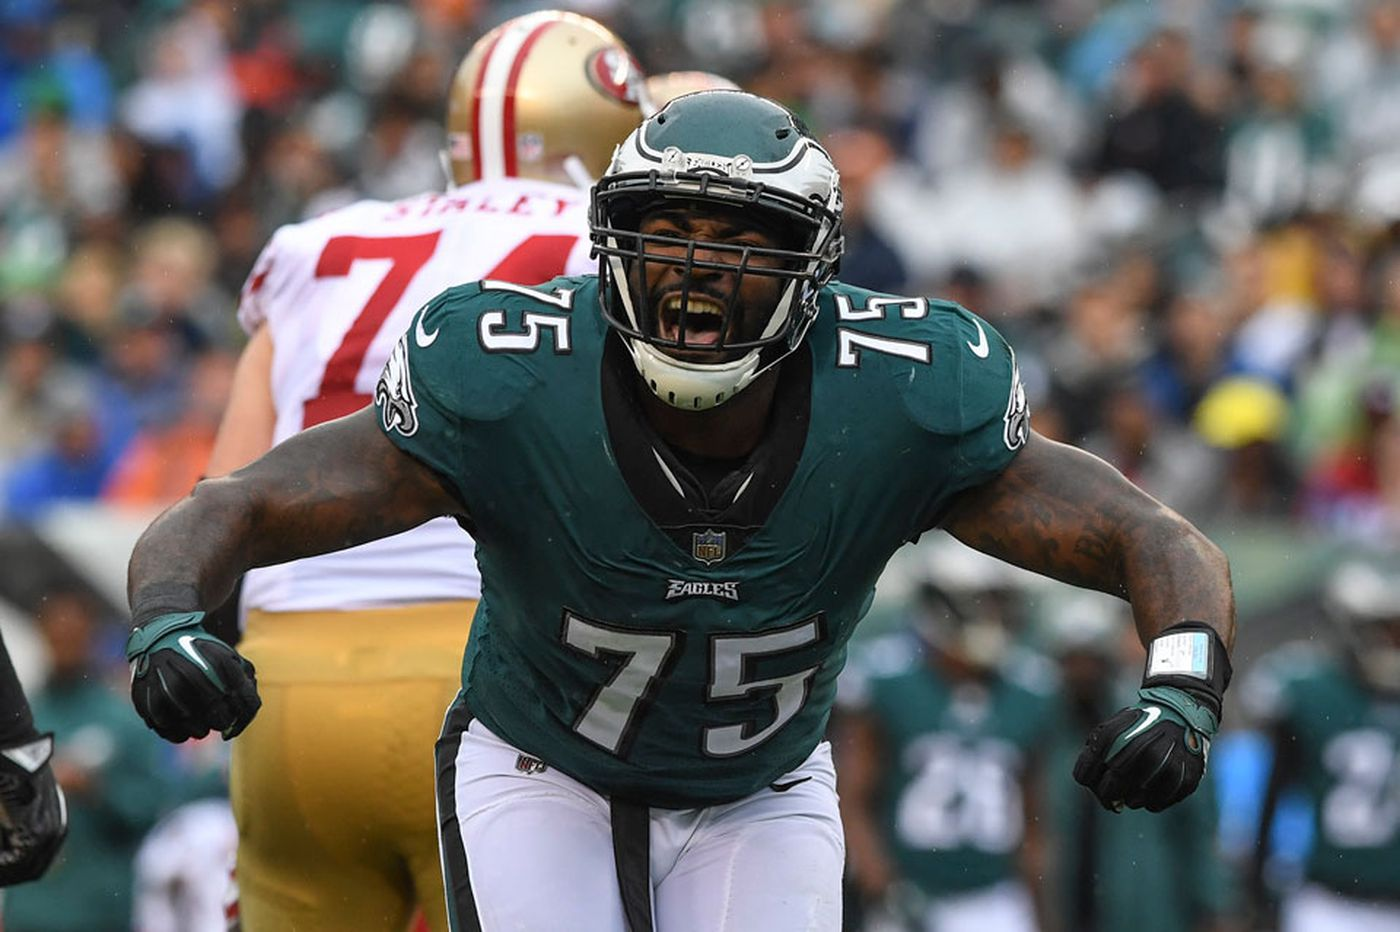 Eagles sign Vinny Curry: What our beat writers think